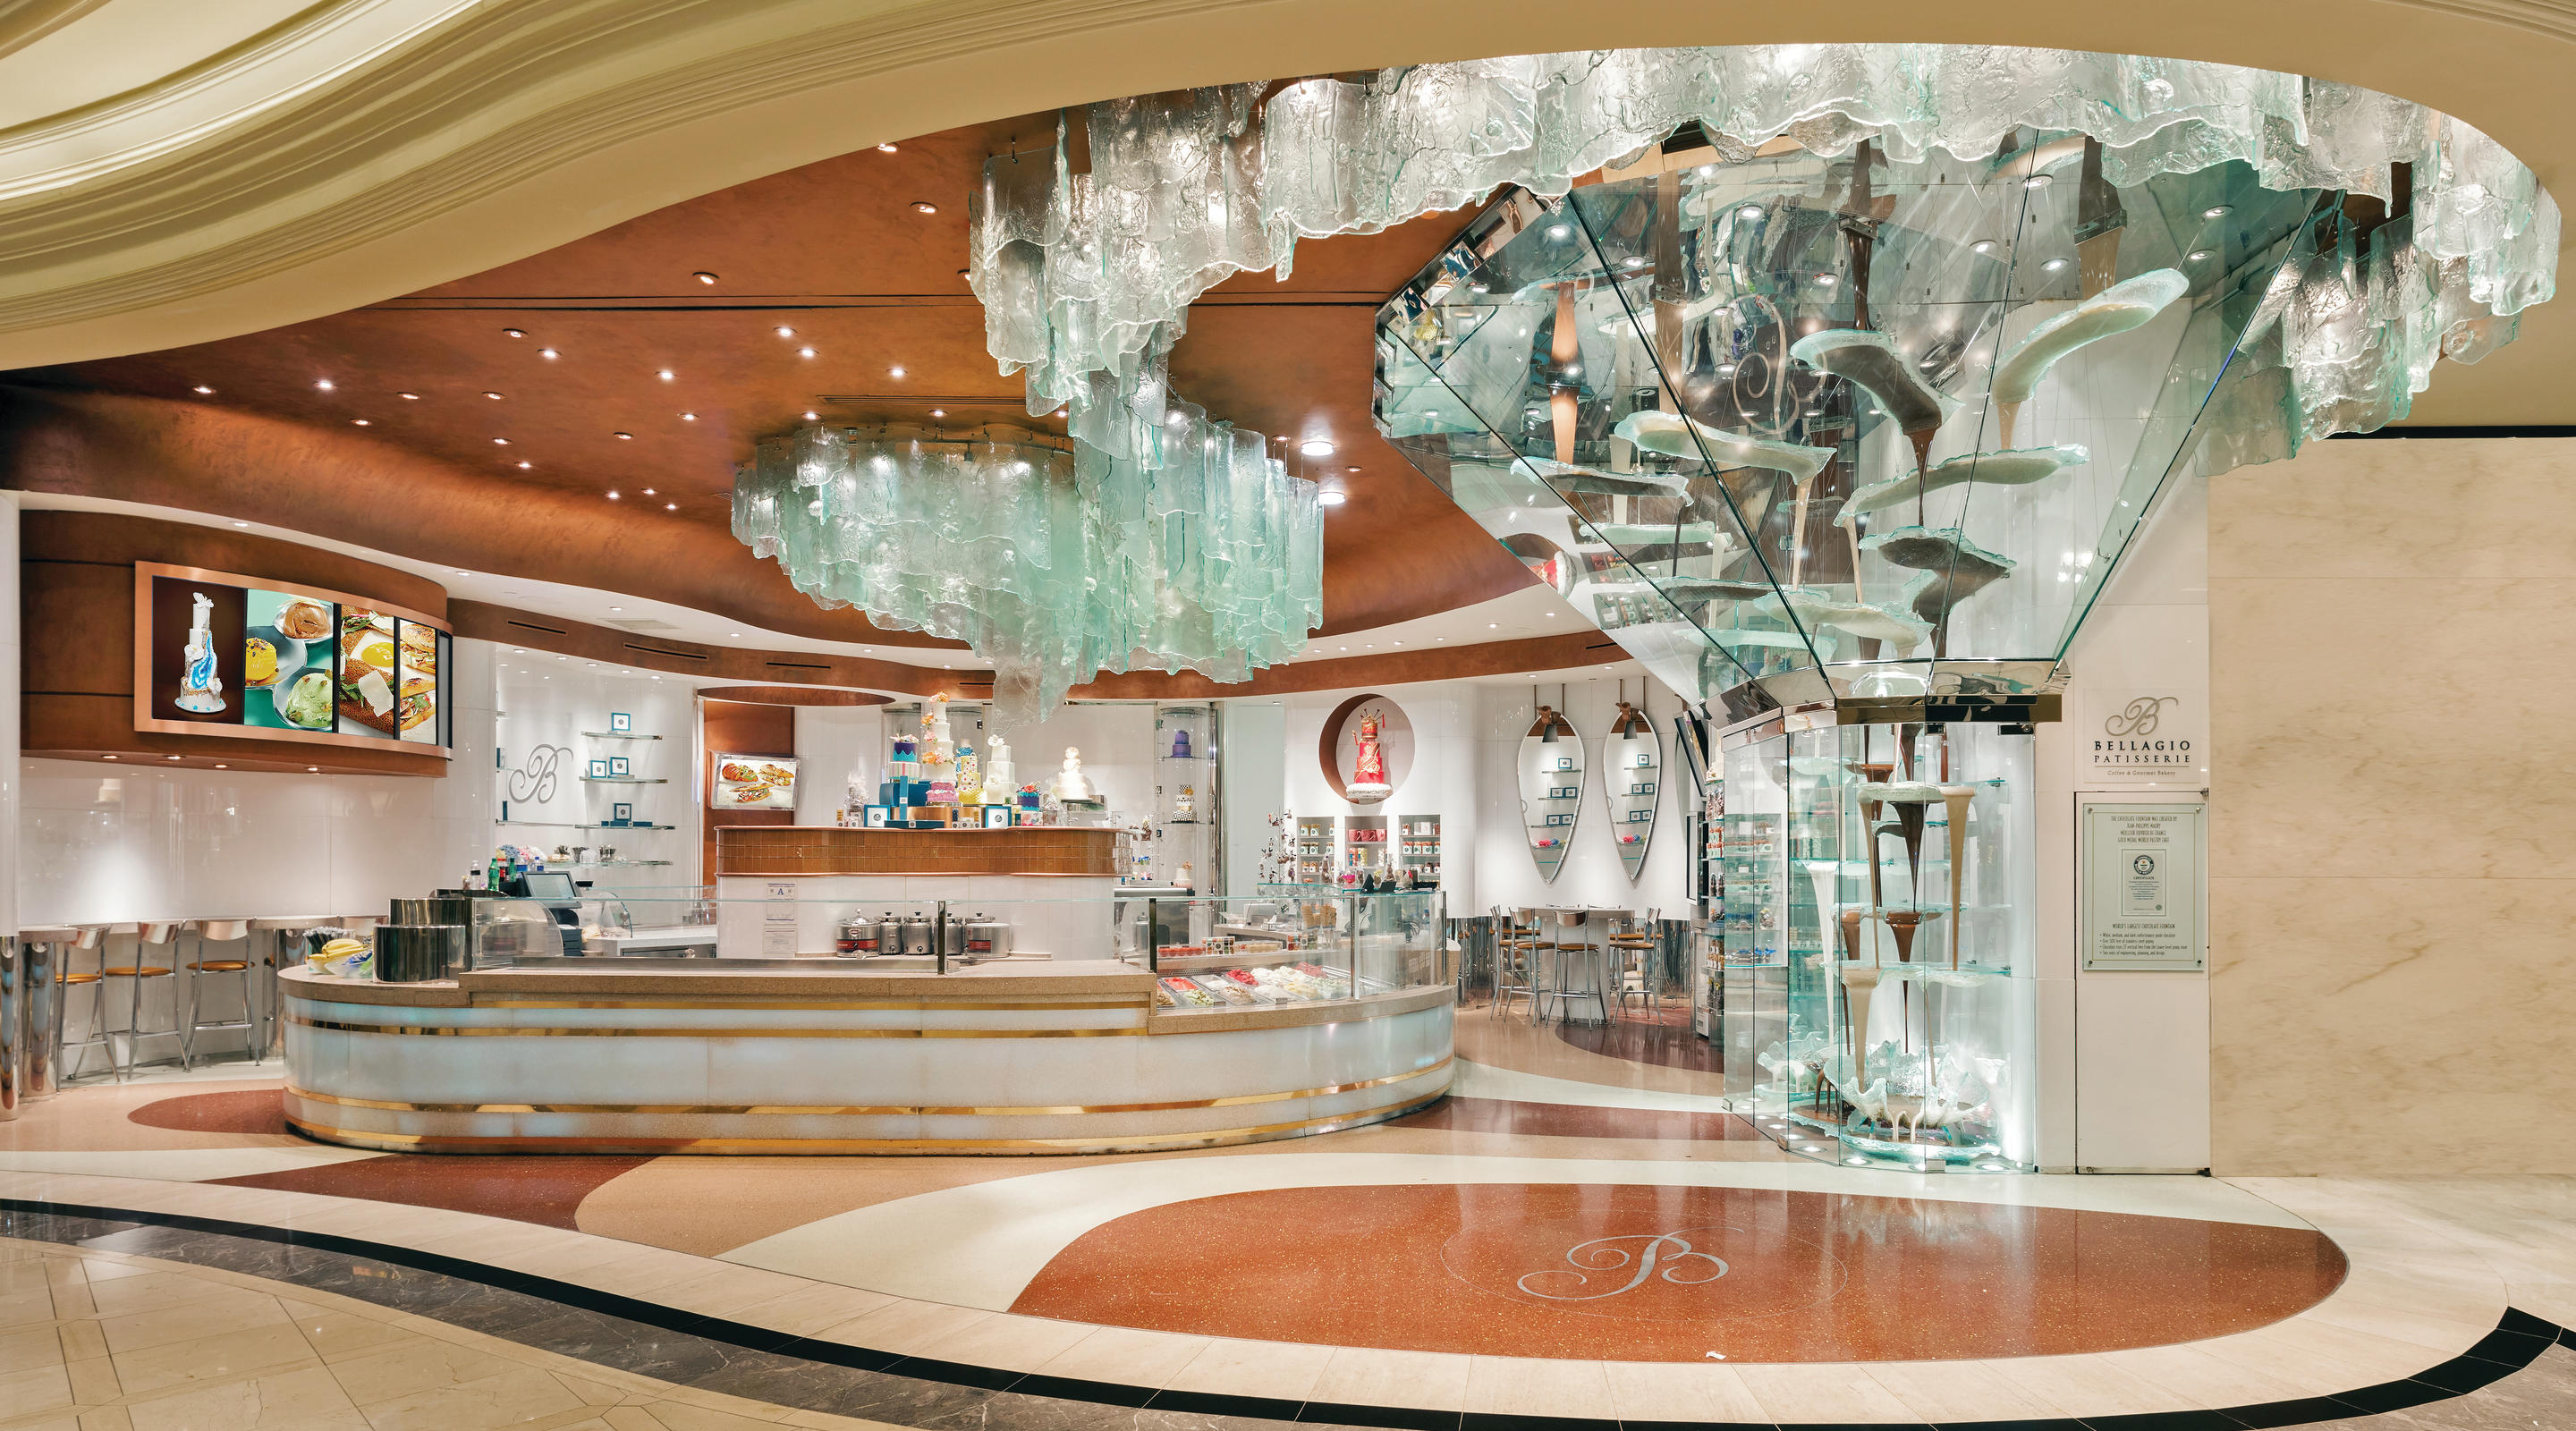 An interior view of the Bellagio patisserie.